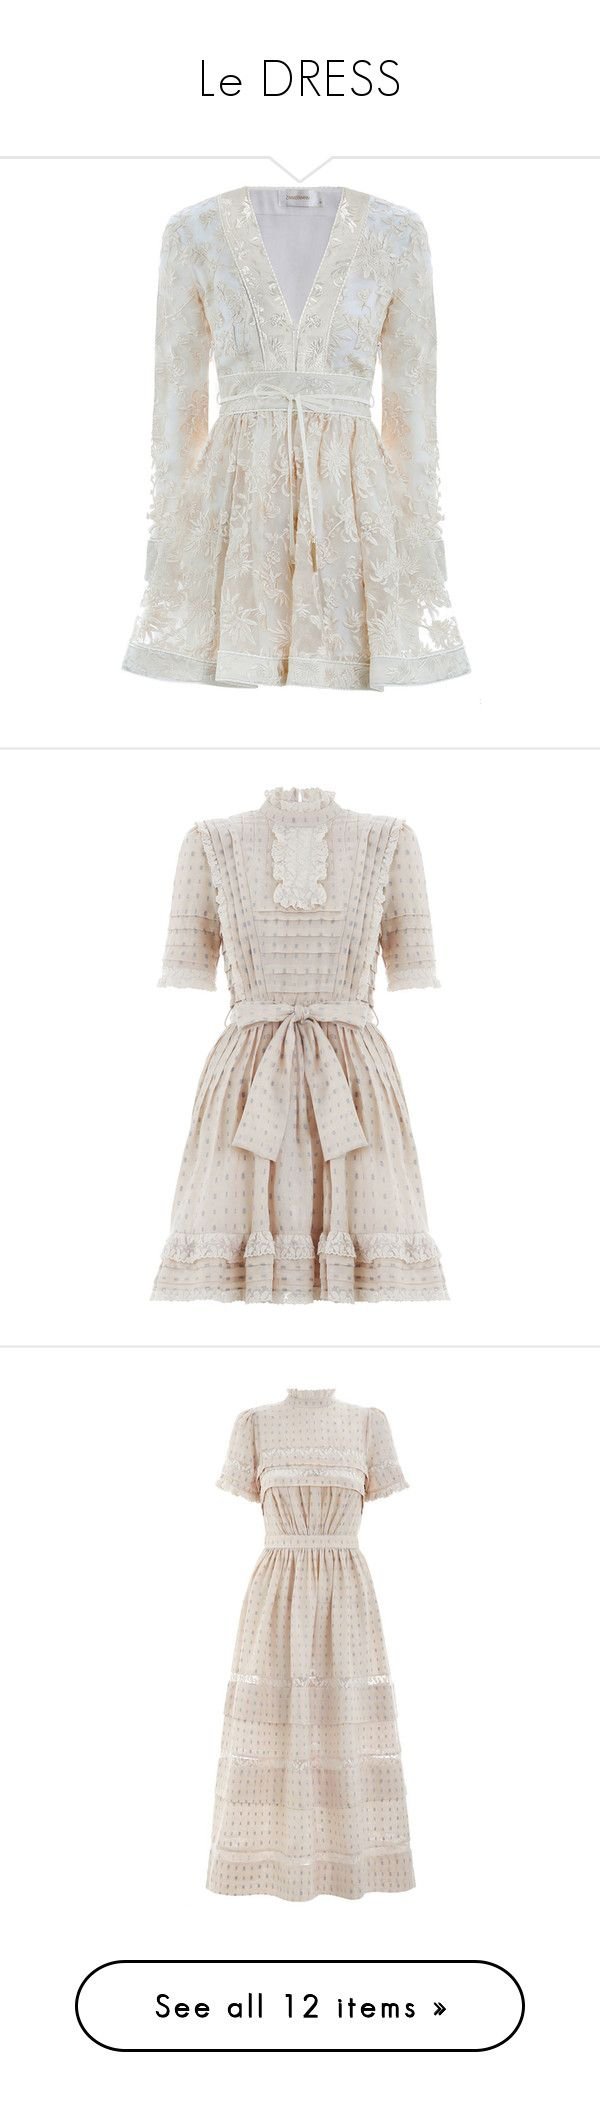 """""""Le DRESS"""" by halcyon-heart ❤ liked on Polyvore featuring dresses, long sleeve dress, sheer long sleeve dress, embroidered dresses, sheer embroidered dress, long sleeve embroidered dress, white skater skirt, white polka dot dress, ruffle sleeve dress and white ruffle dress"""